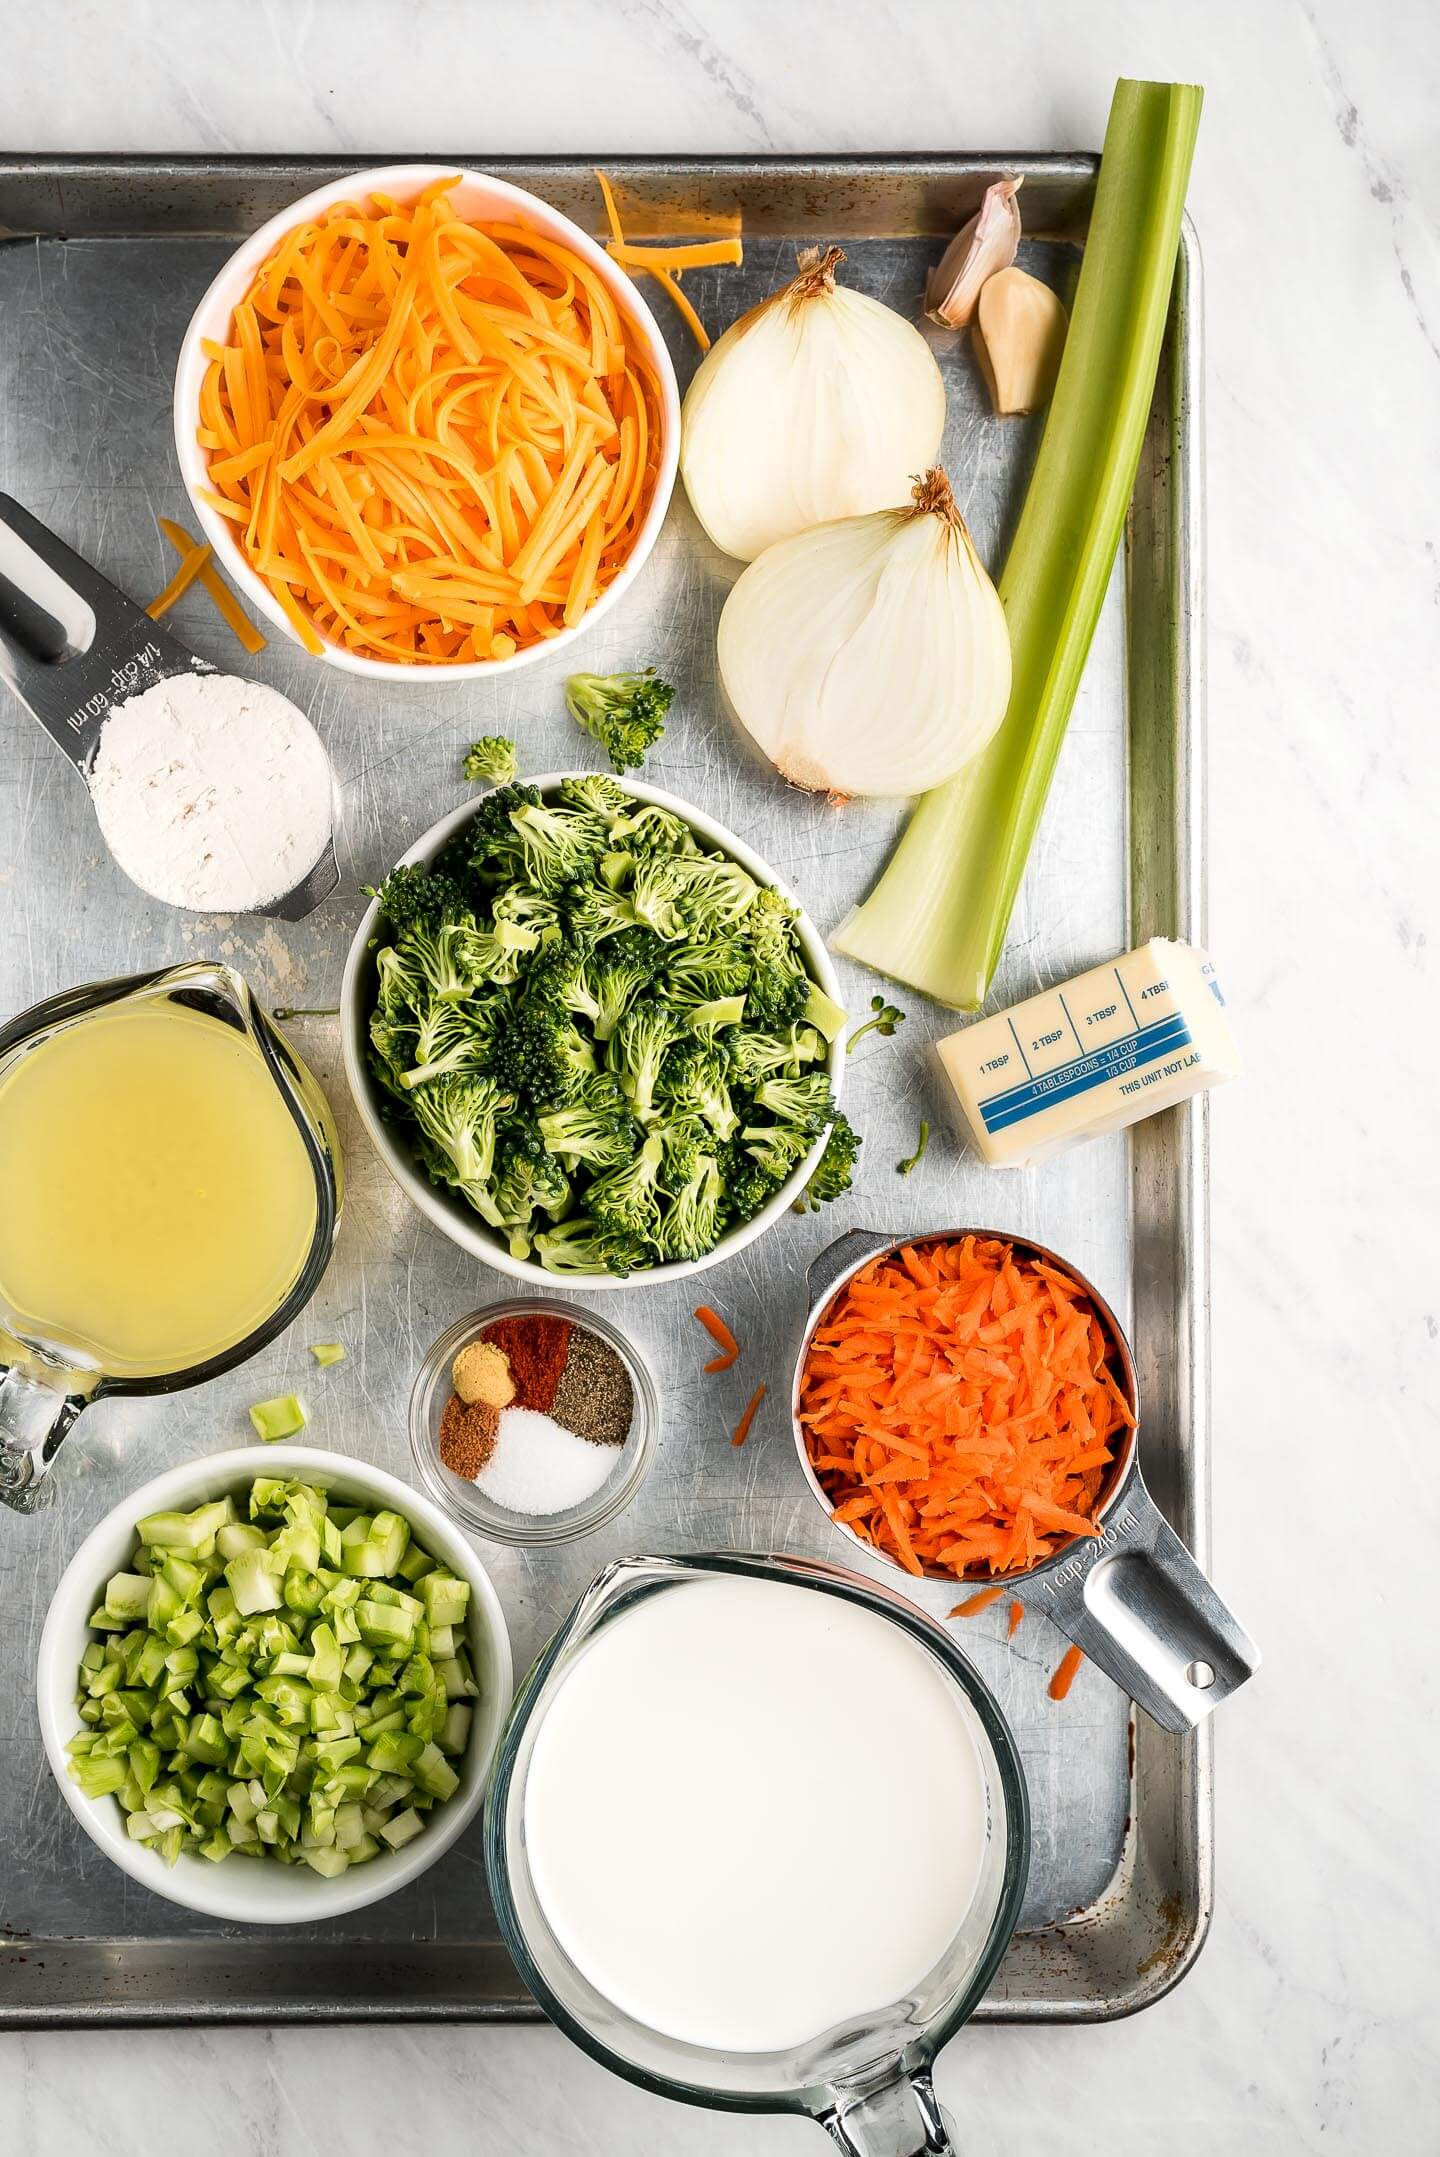 A baking sheet with ingredients on it- shredded cheese, broccoli florets, shredded carrots, celery, cream, spices, onions, flour, butter, and broth.